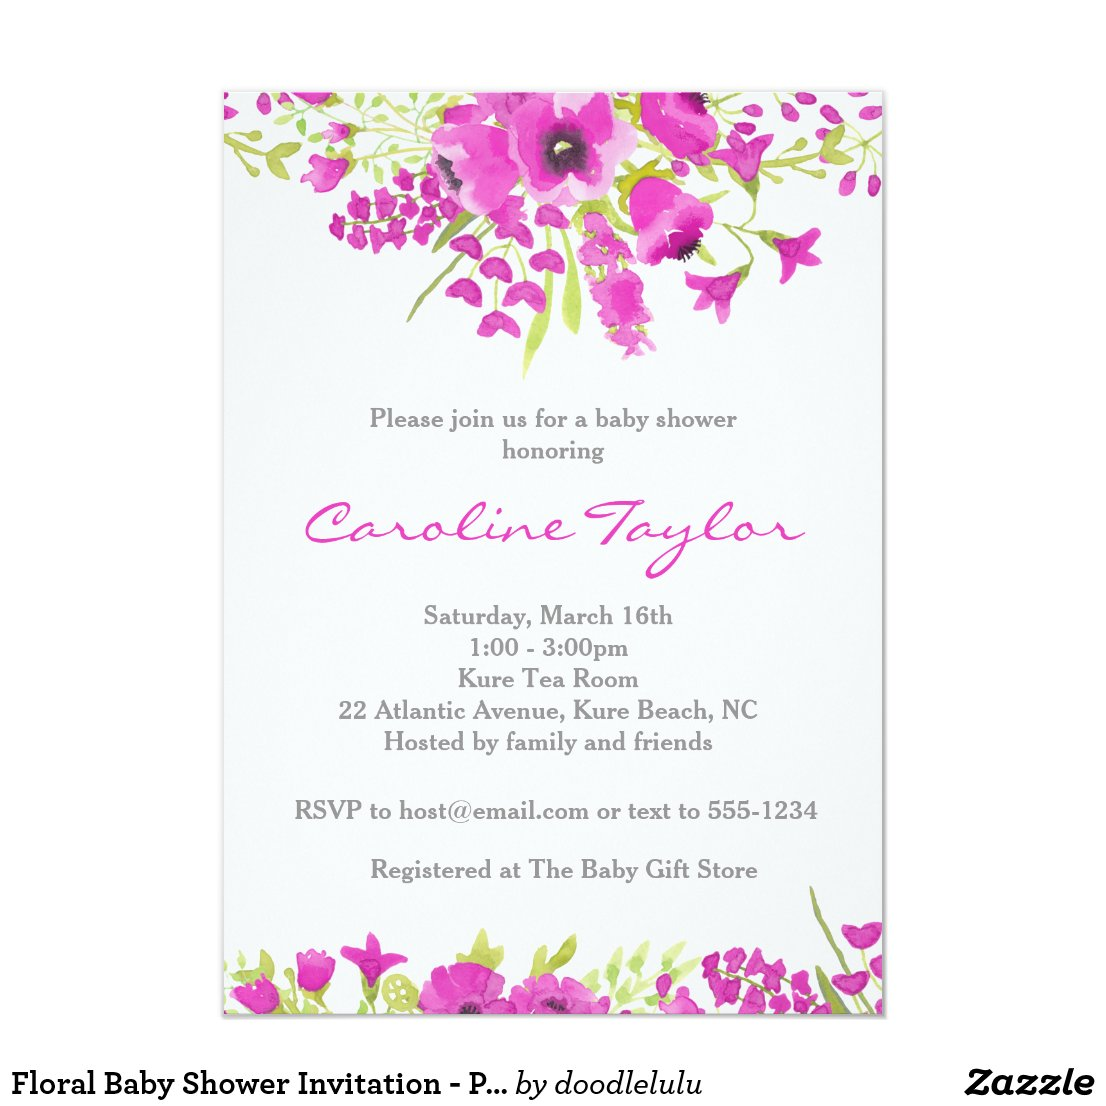 Floral Baby Shower Invitation - Purple Watercolor